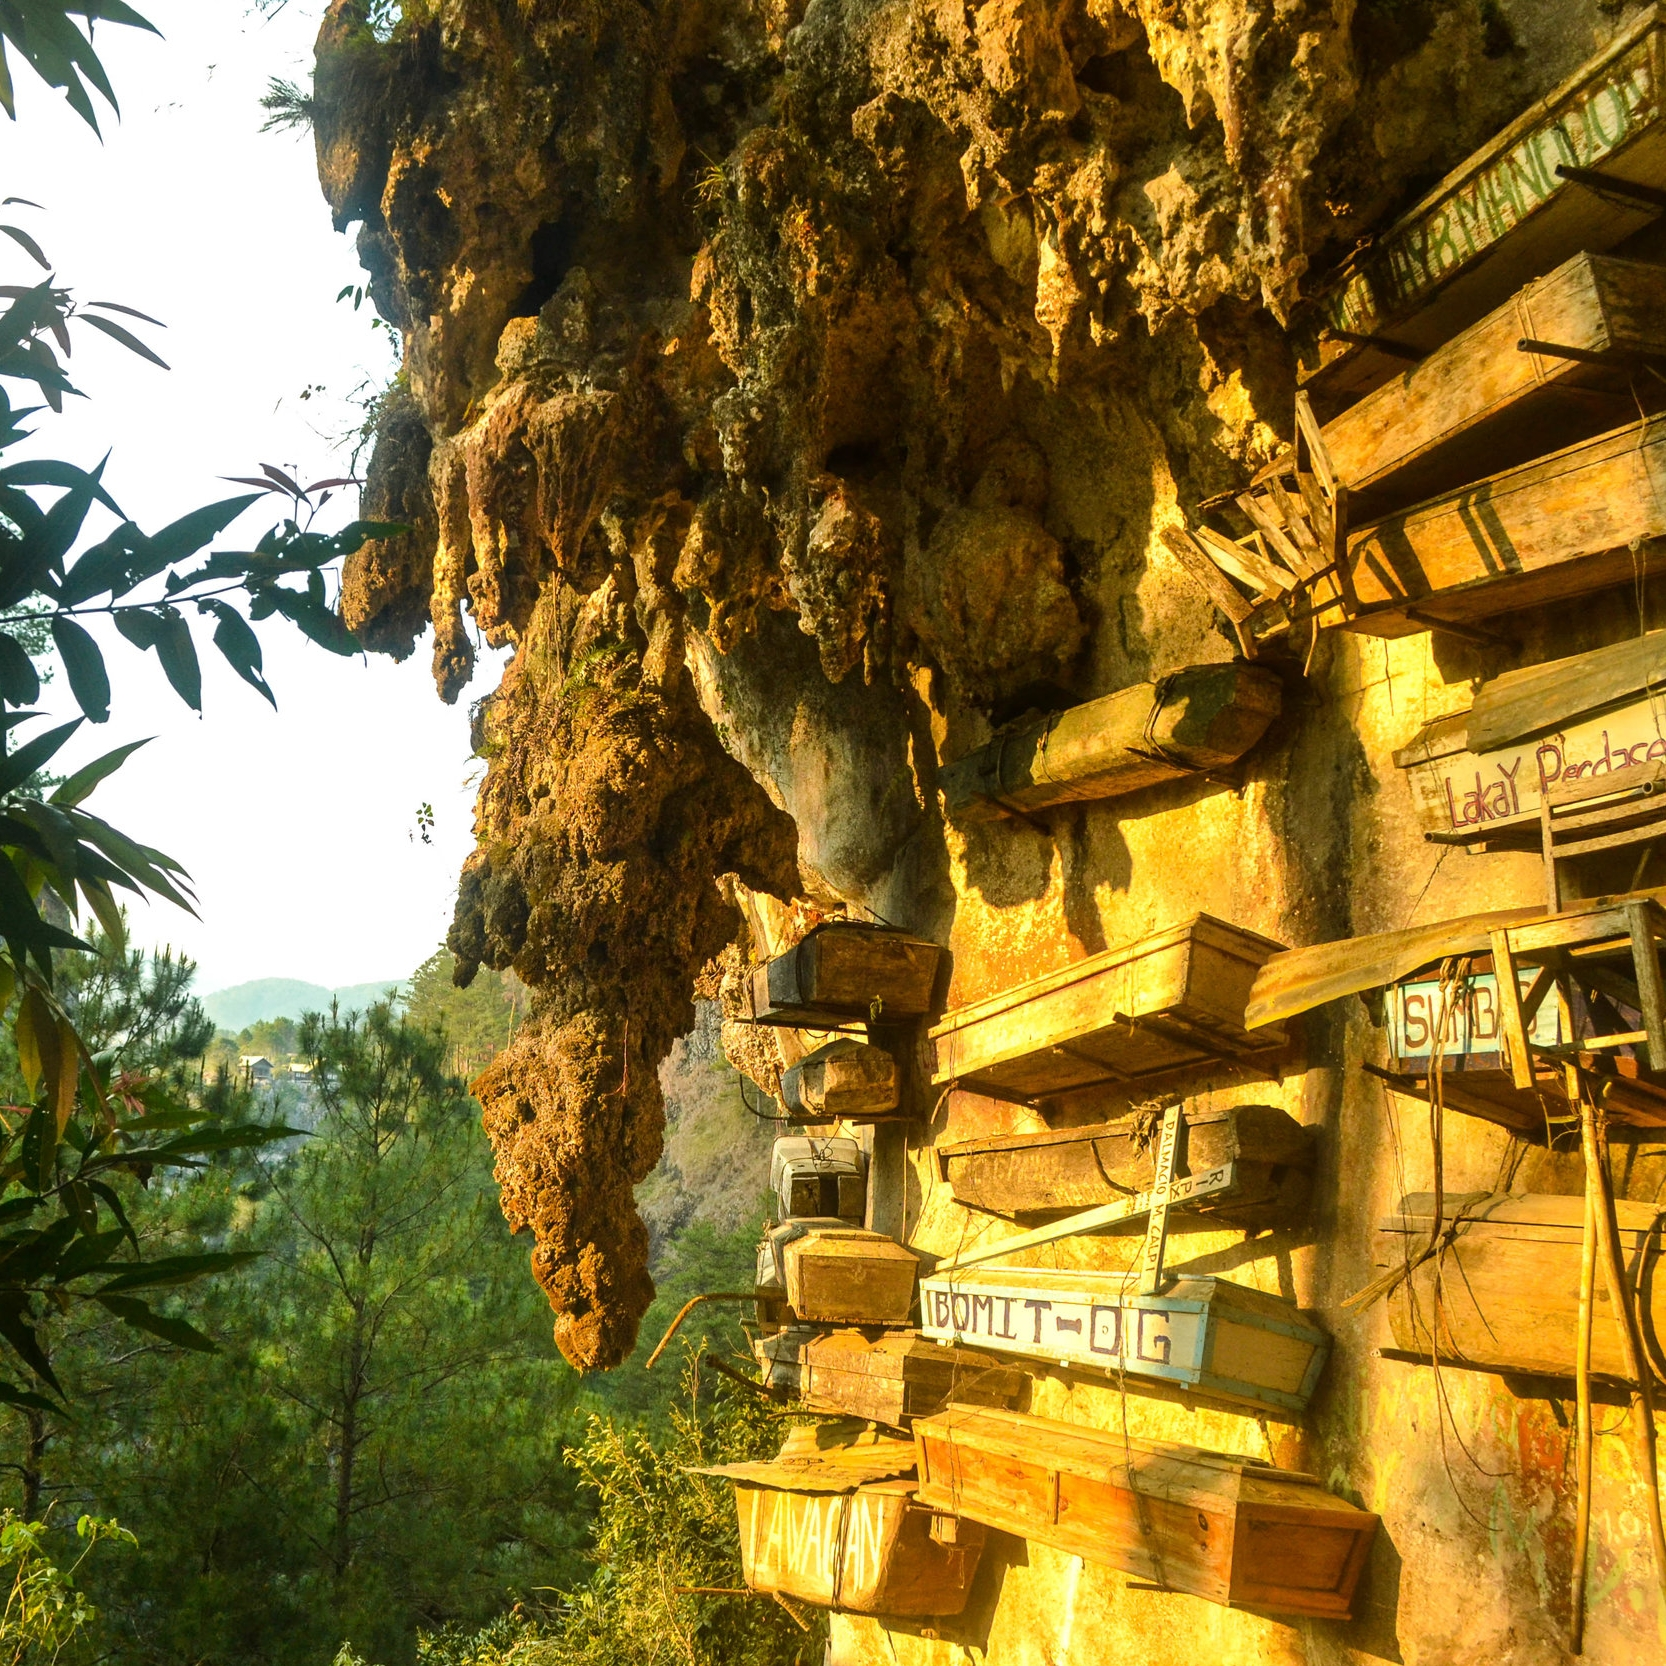 Libingan (Cemetery) - Hanging coffins is a cemetery in Sagada, Philippines